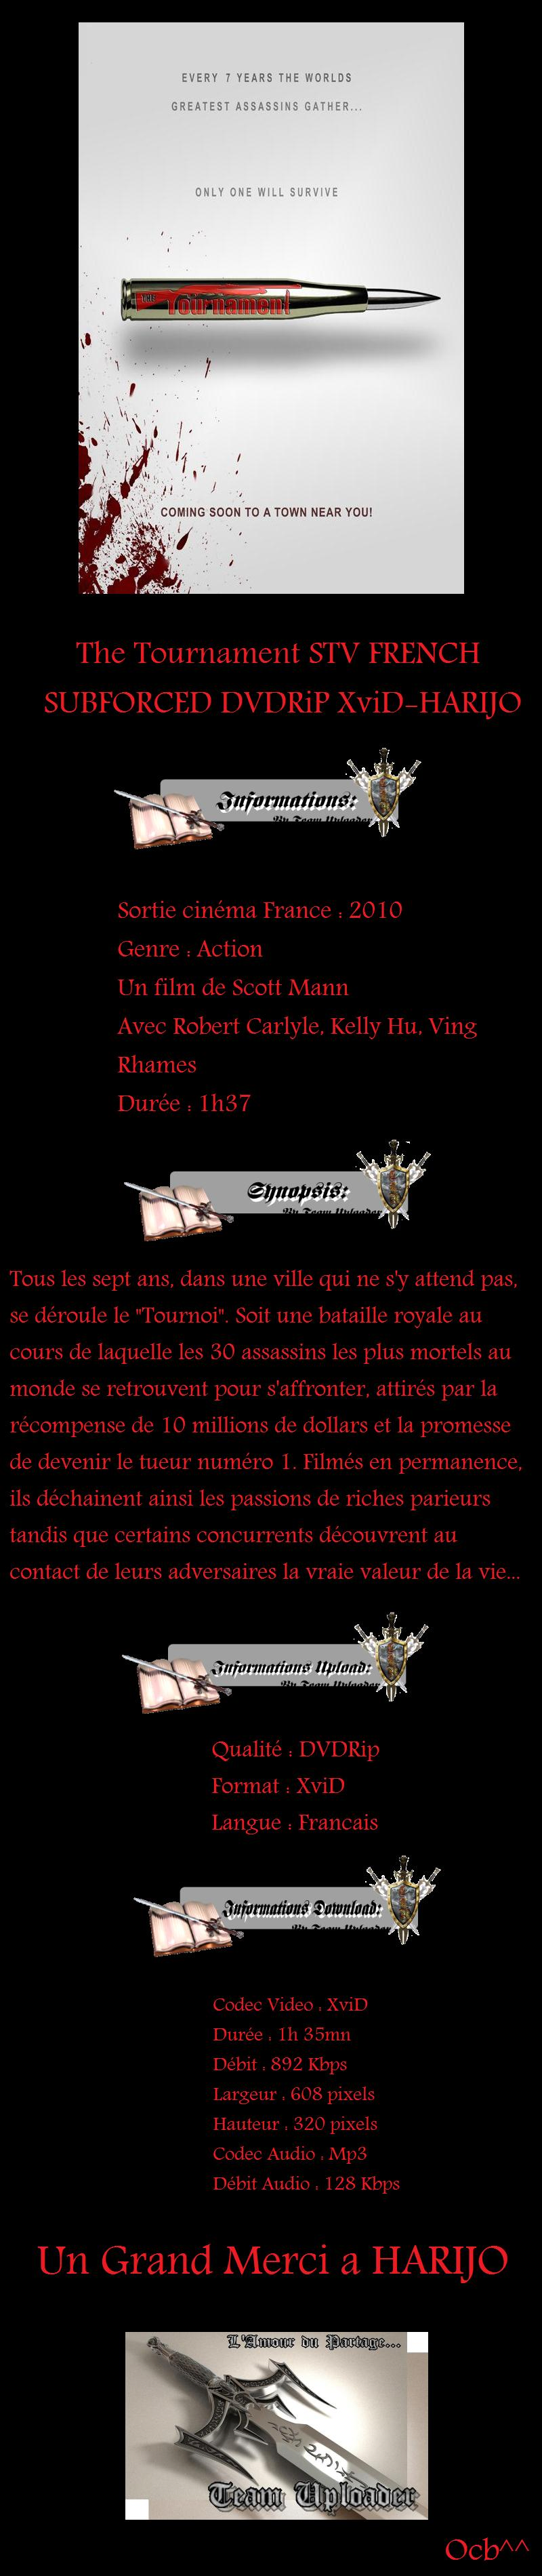 The Tournament DVDRIP FRENCH 2009